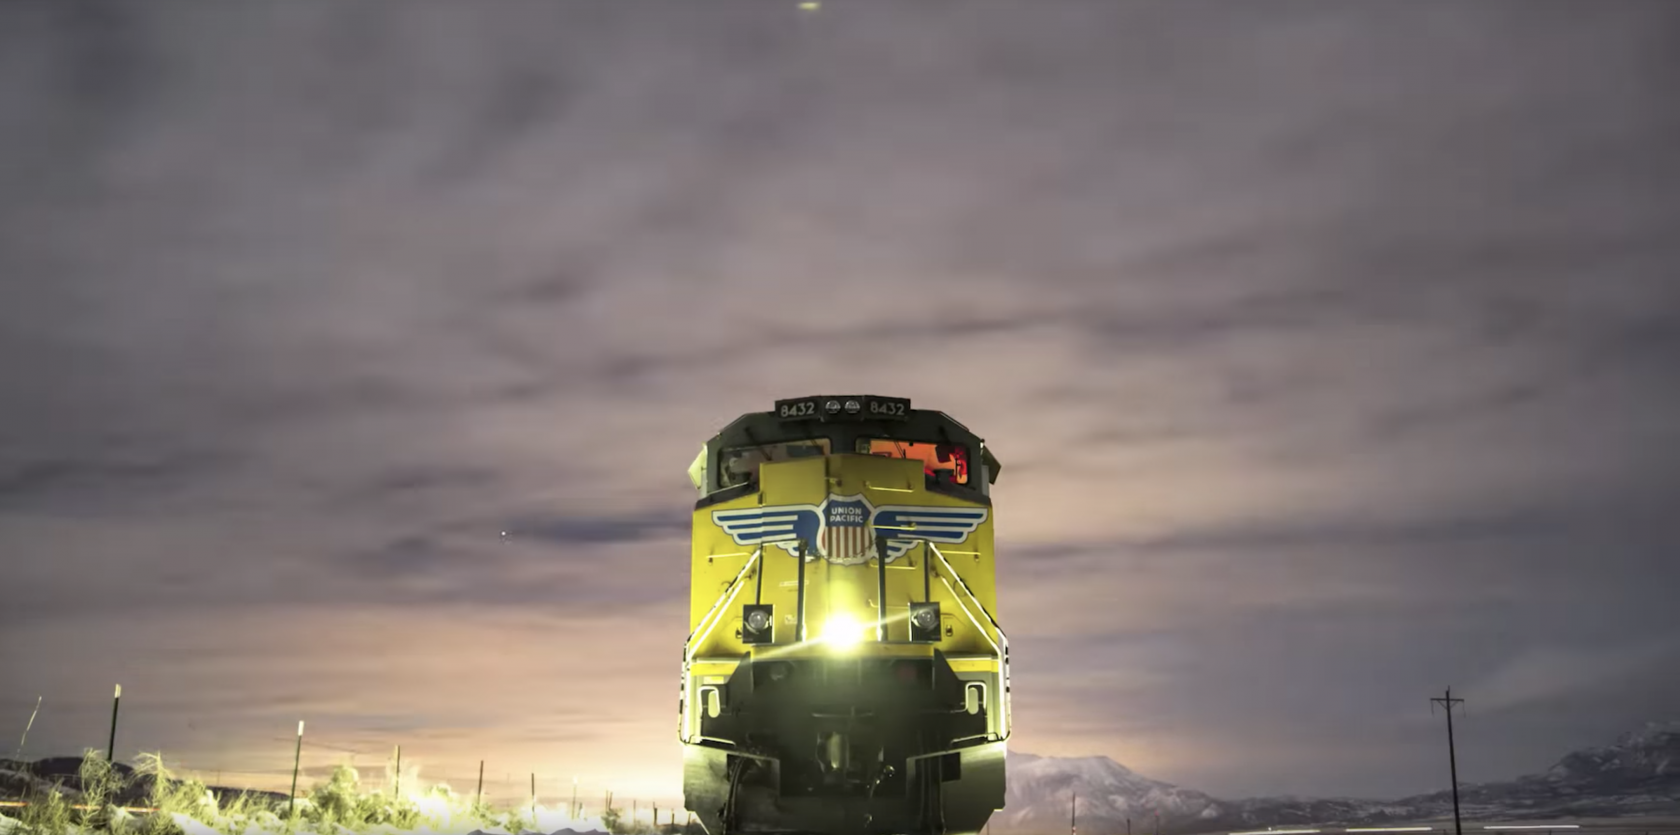 Union Pacific train at night